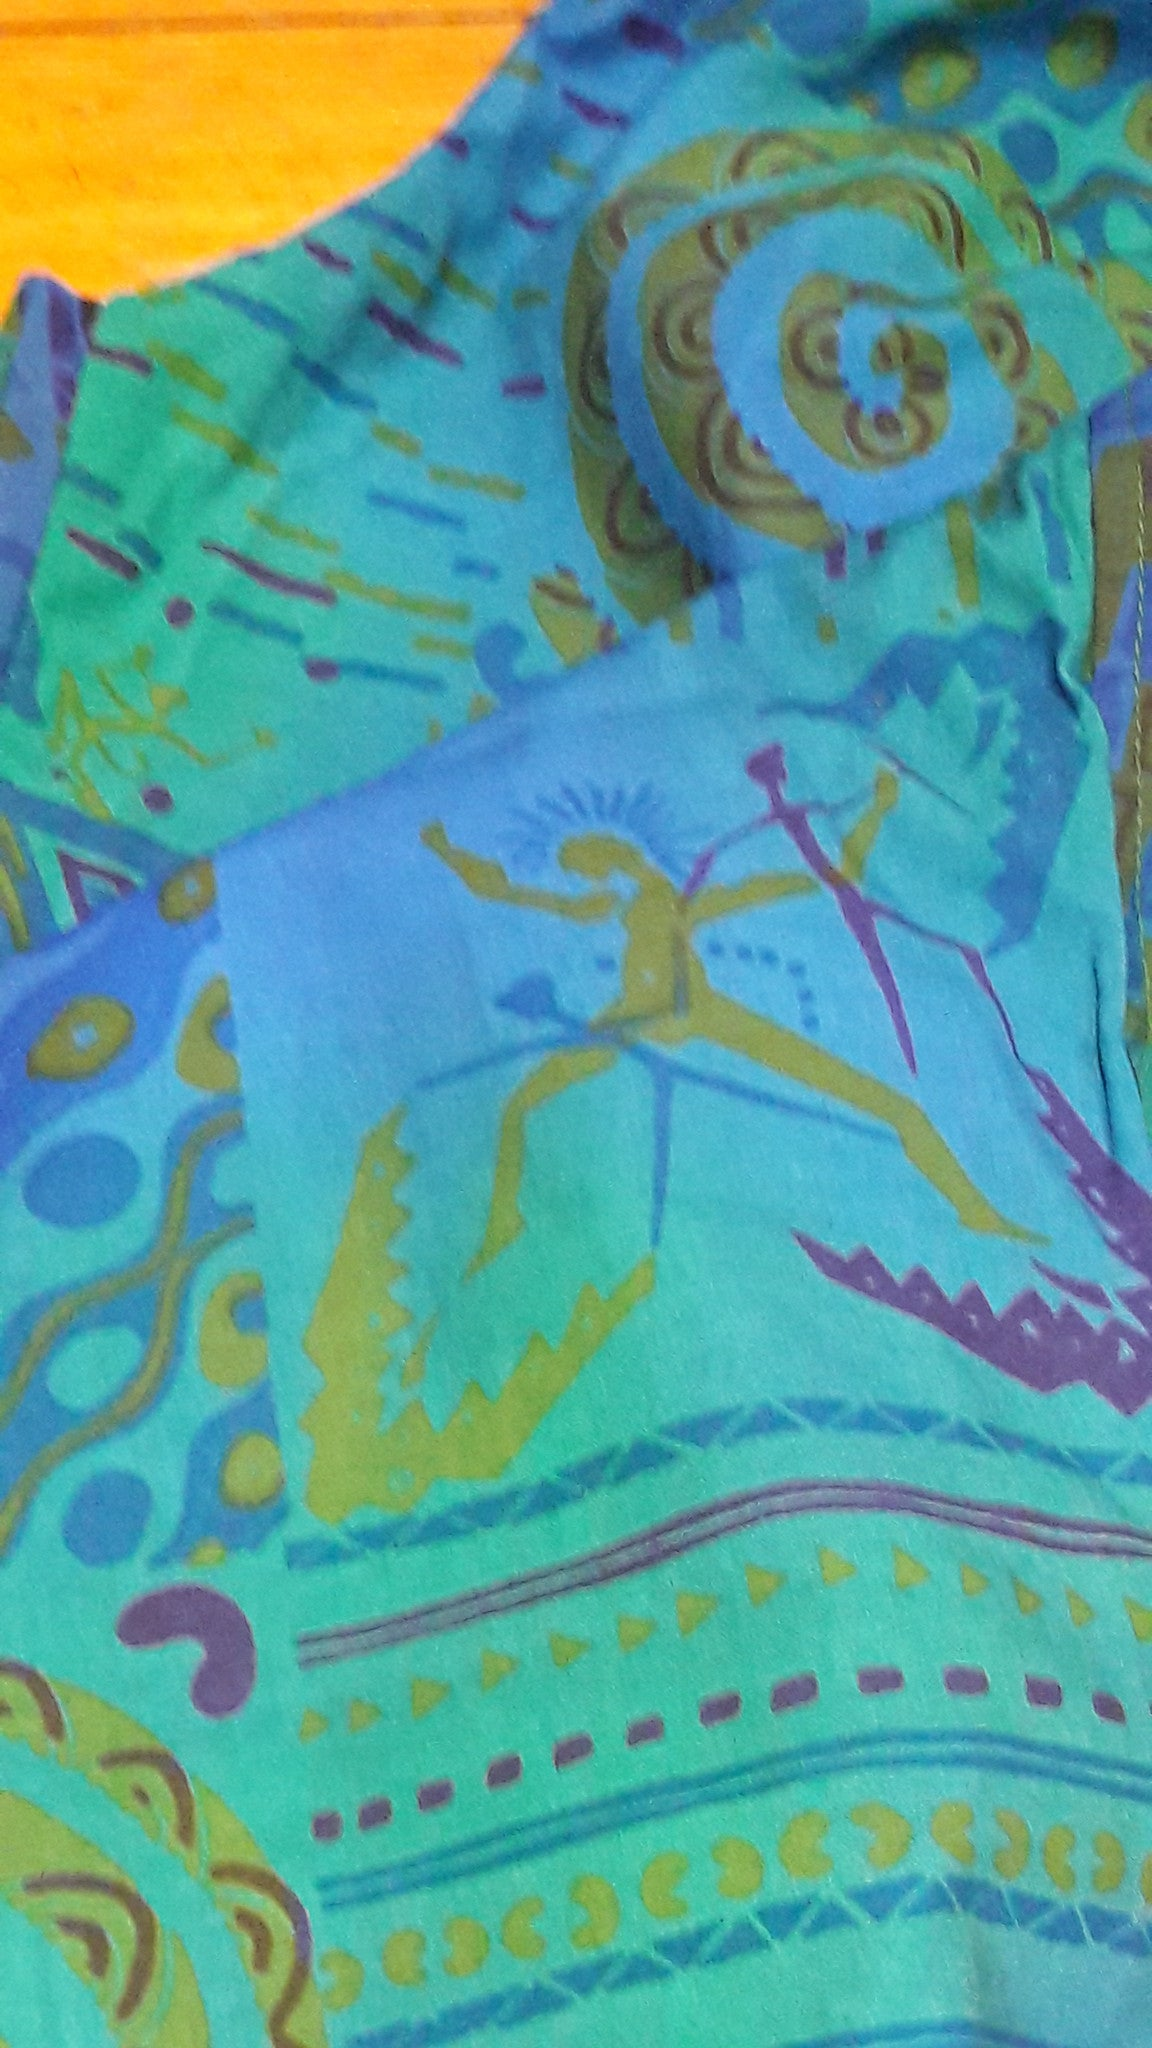 Verts - Rock Painting with Swirls Print - 100% Cotton Trousers